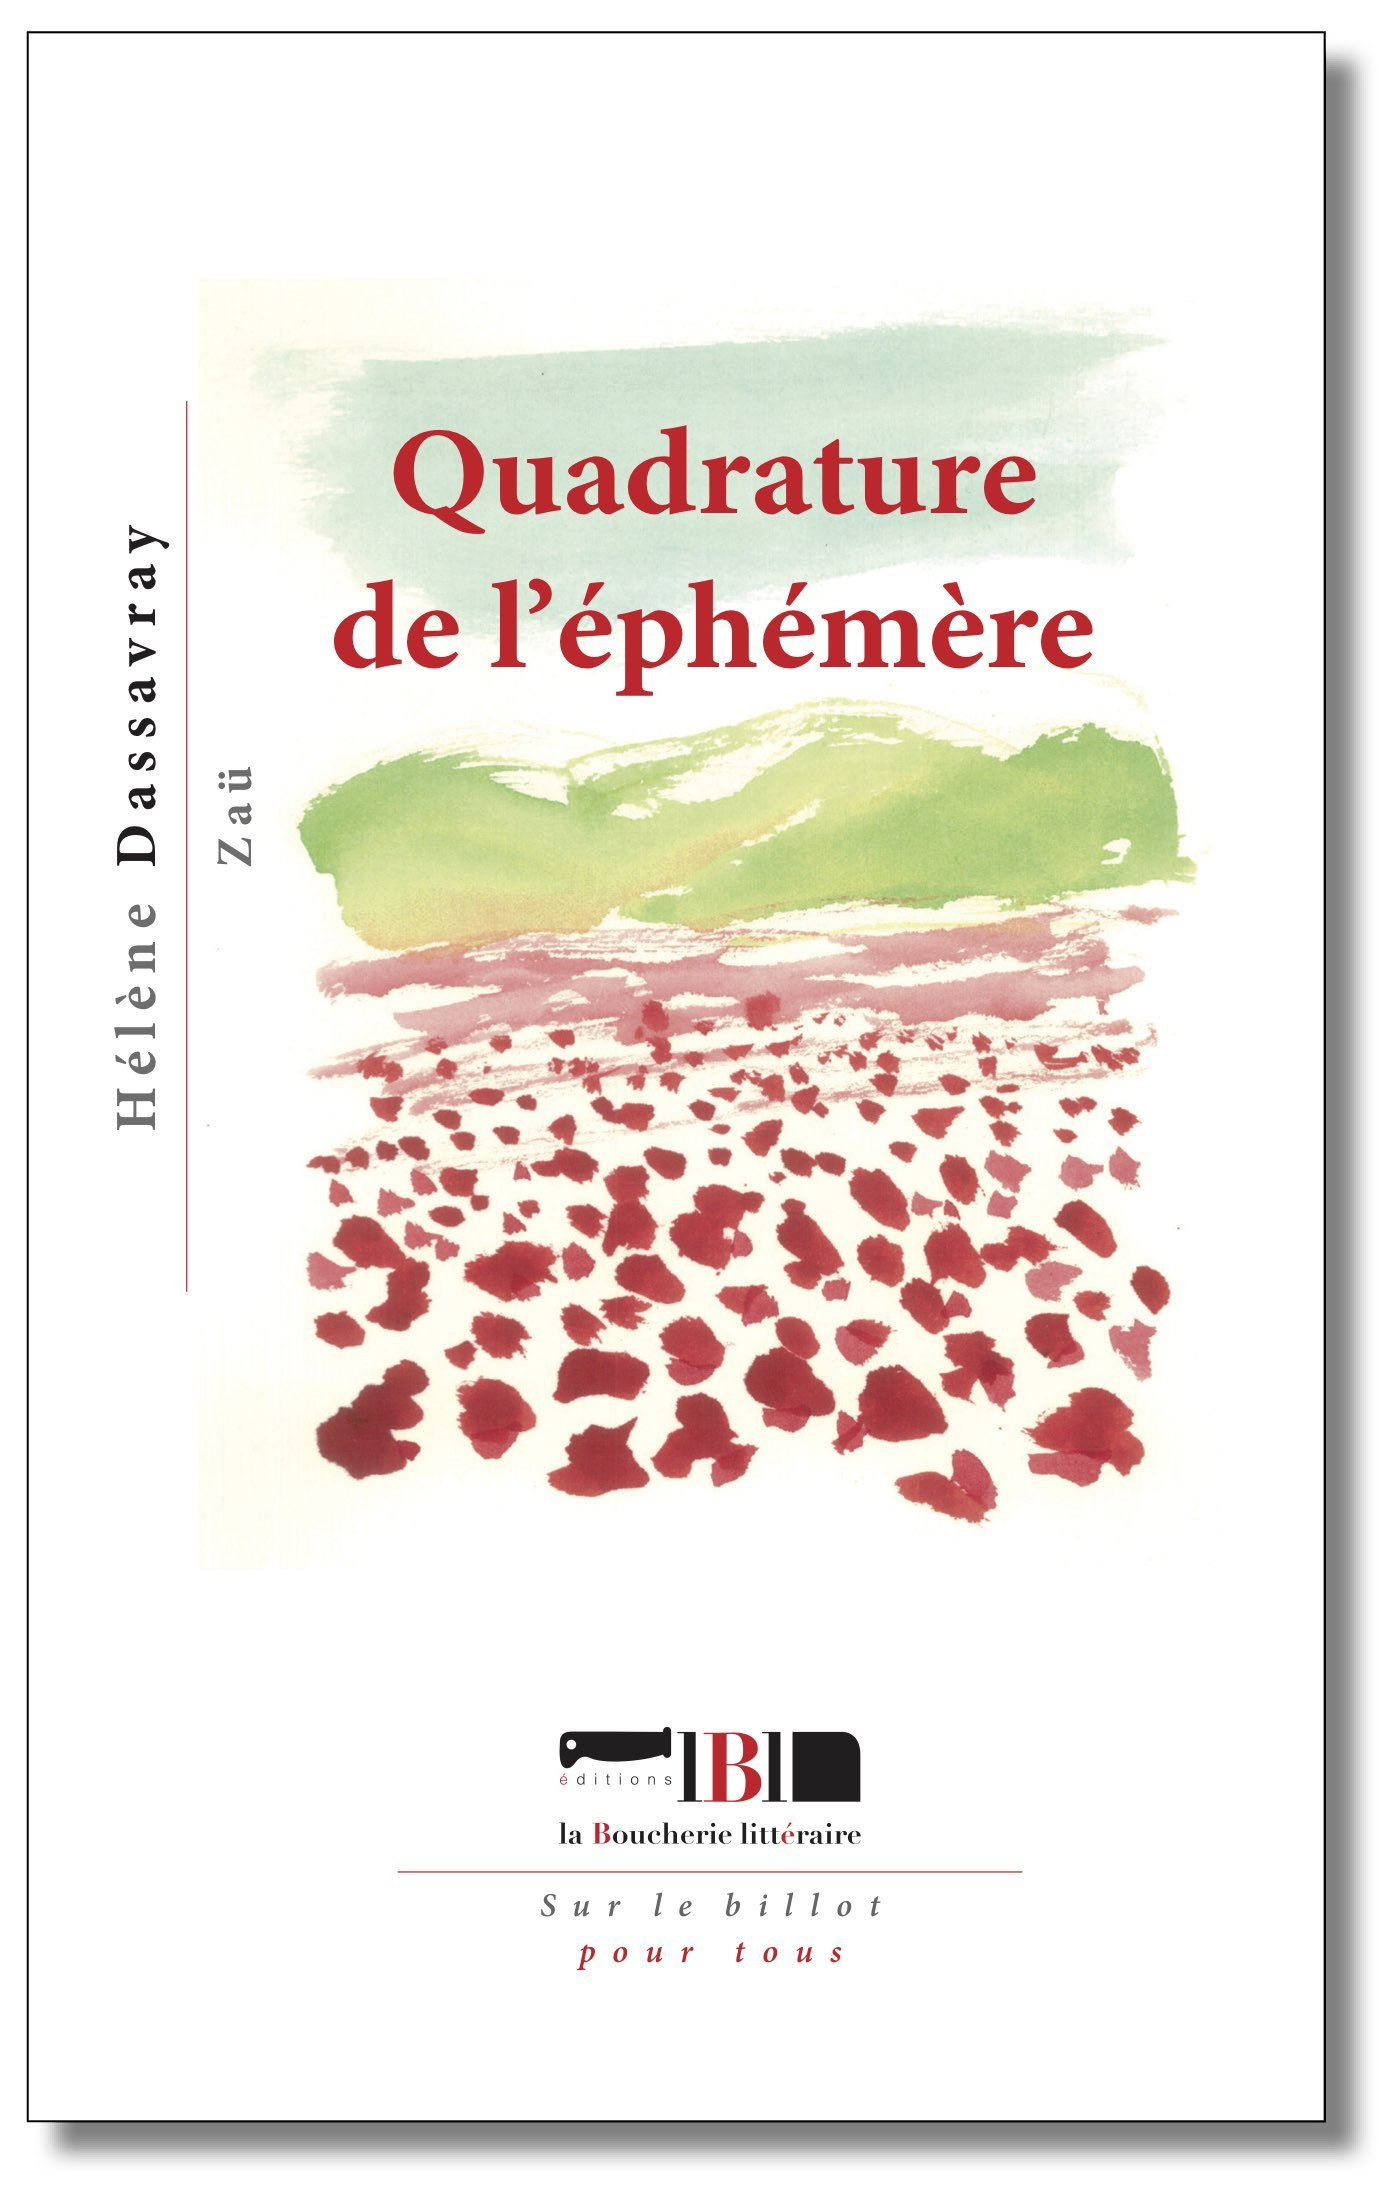 QUADRATURE DE L'EPHEMERE